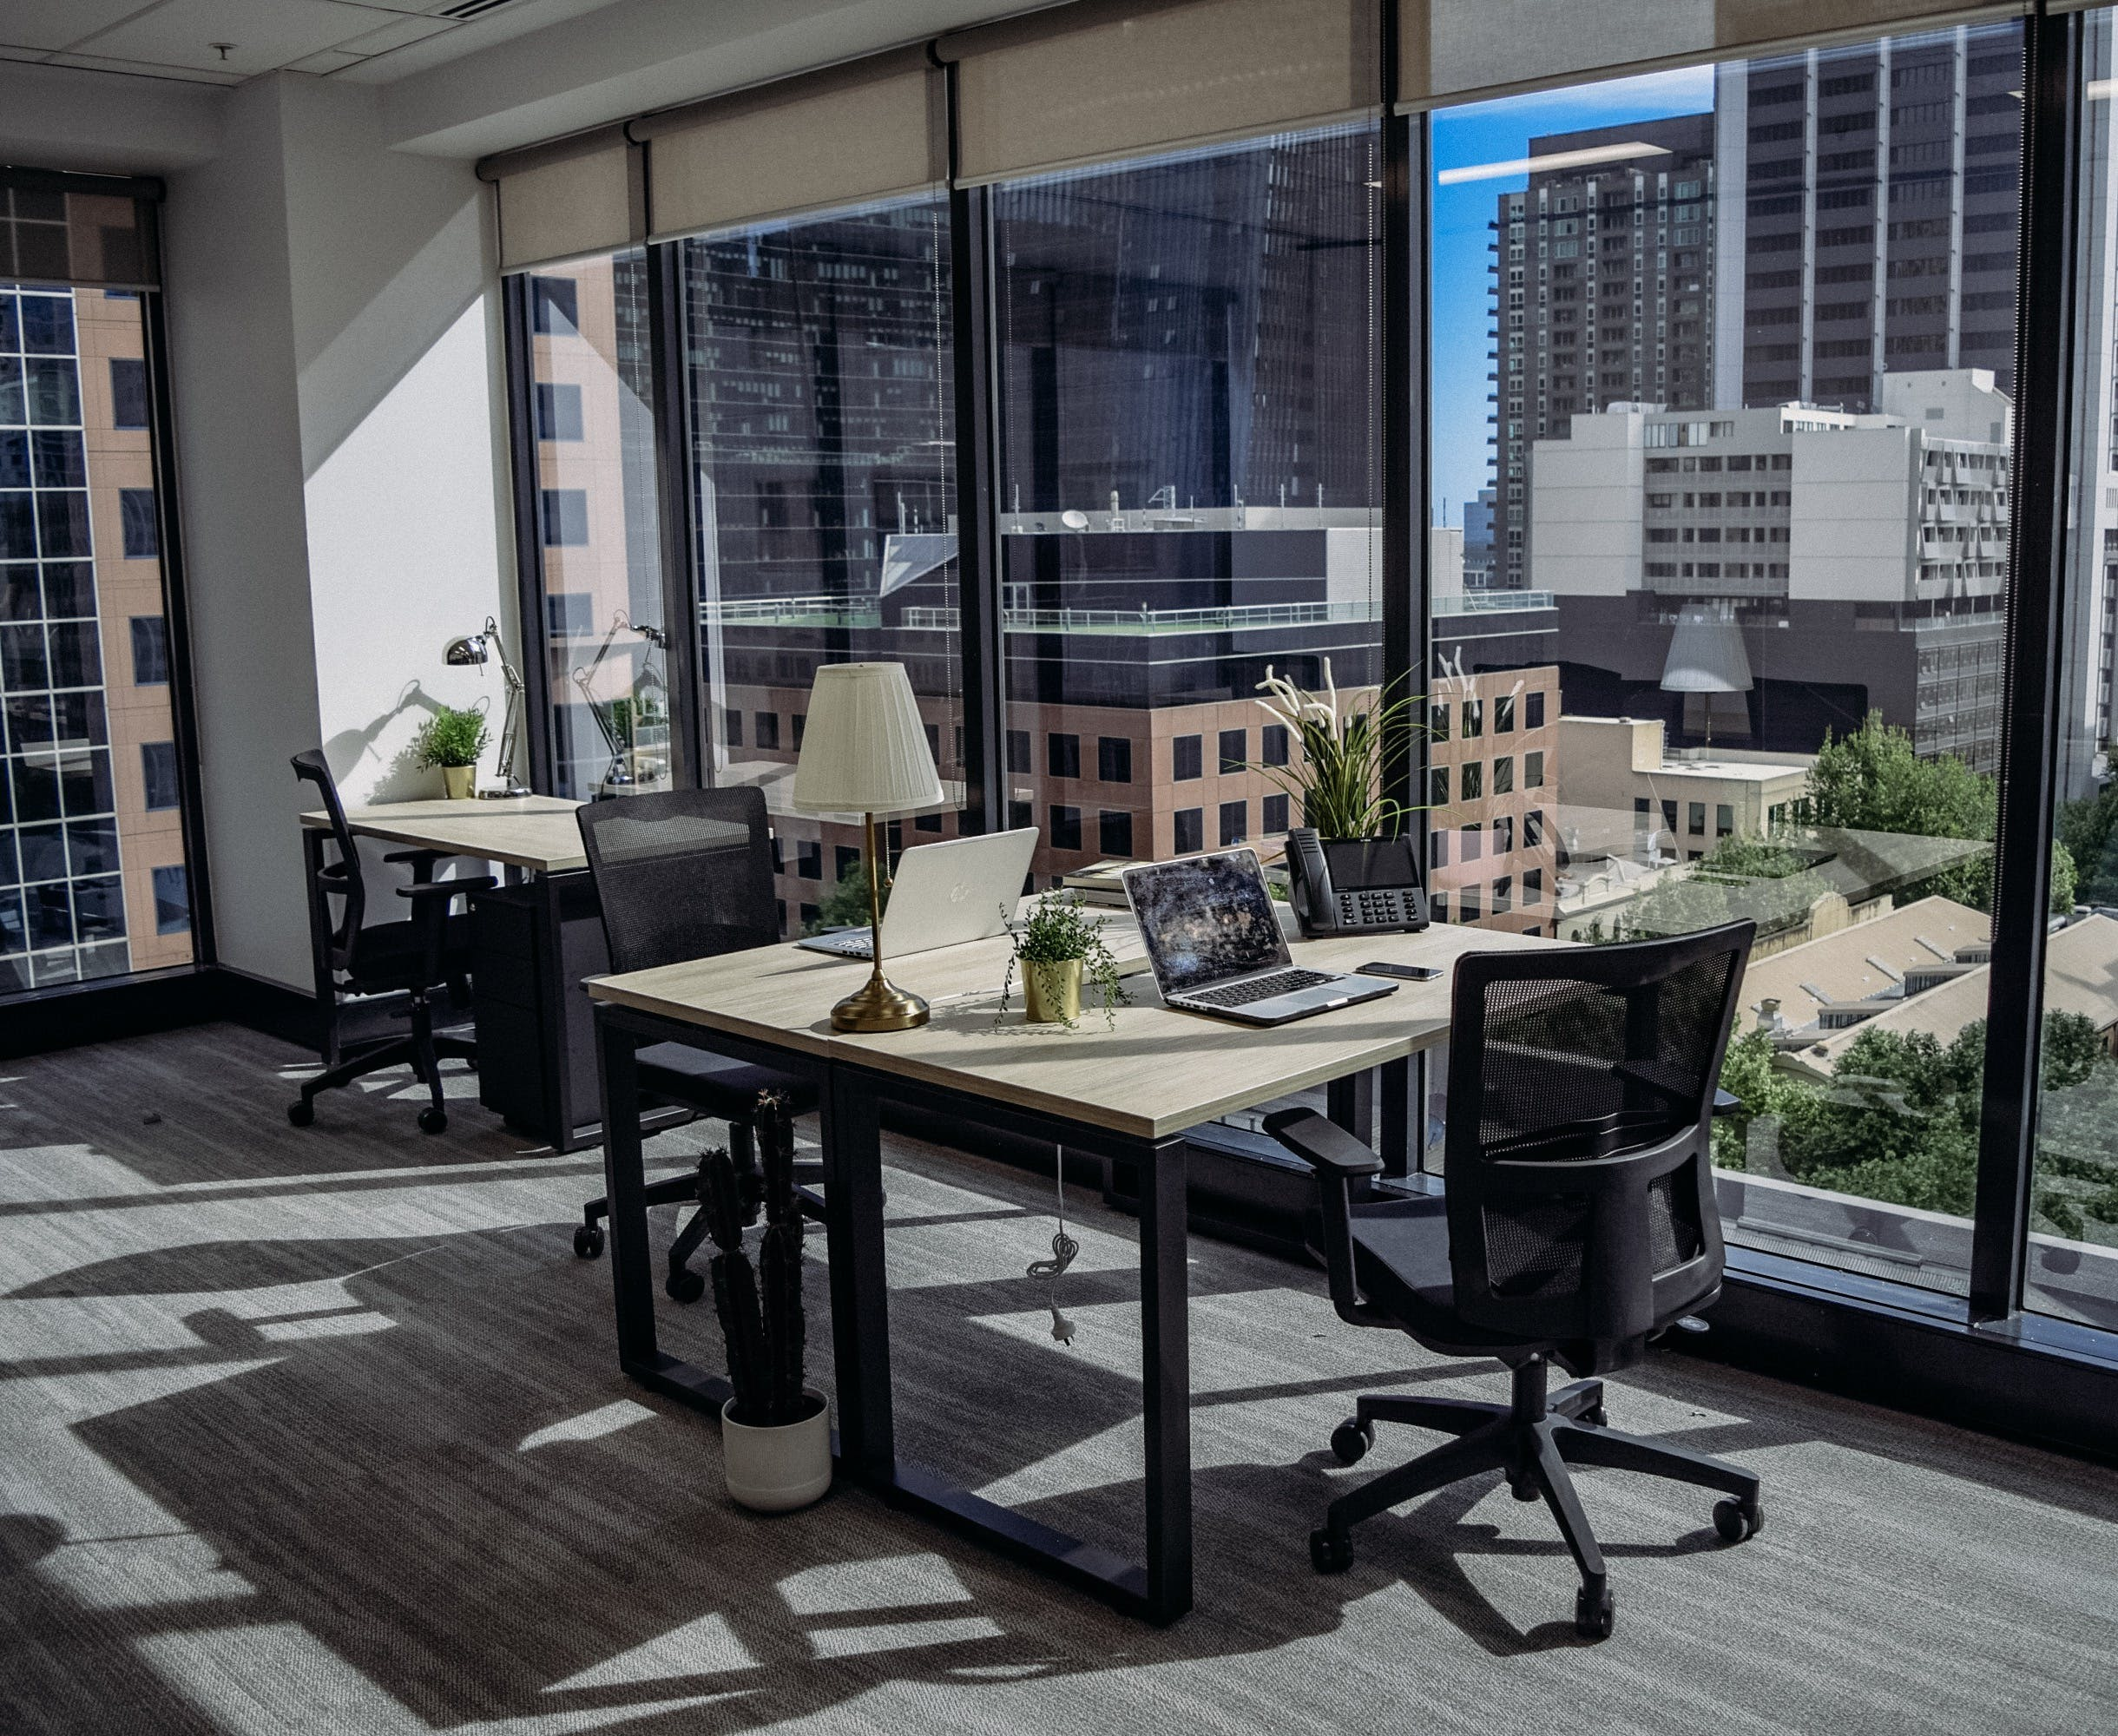 Suite 701, private office at Altitude CoWork, image 8